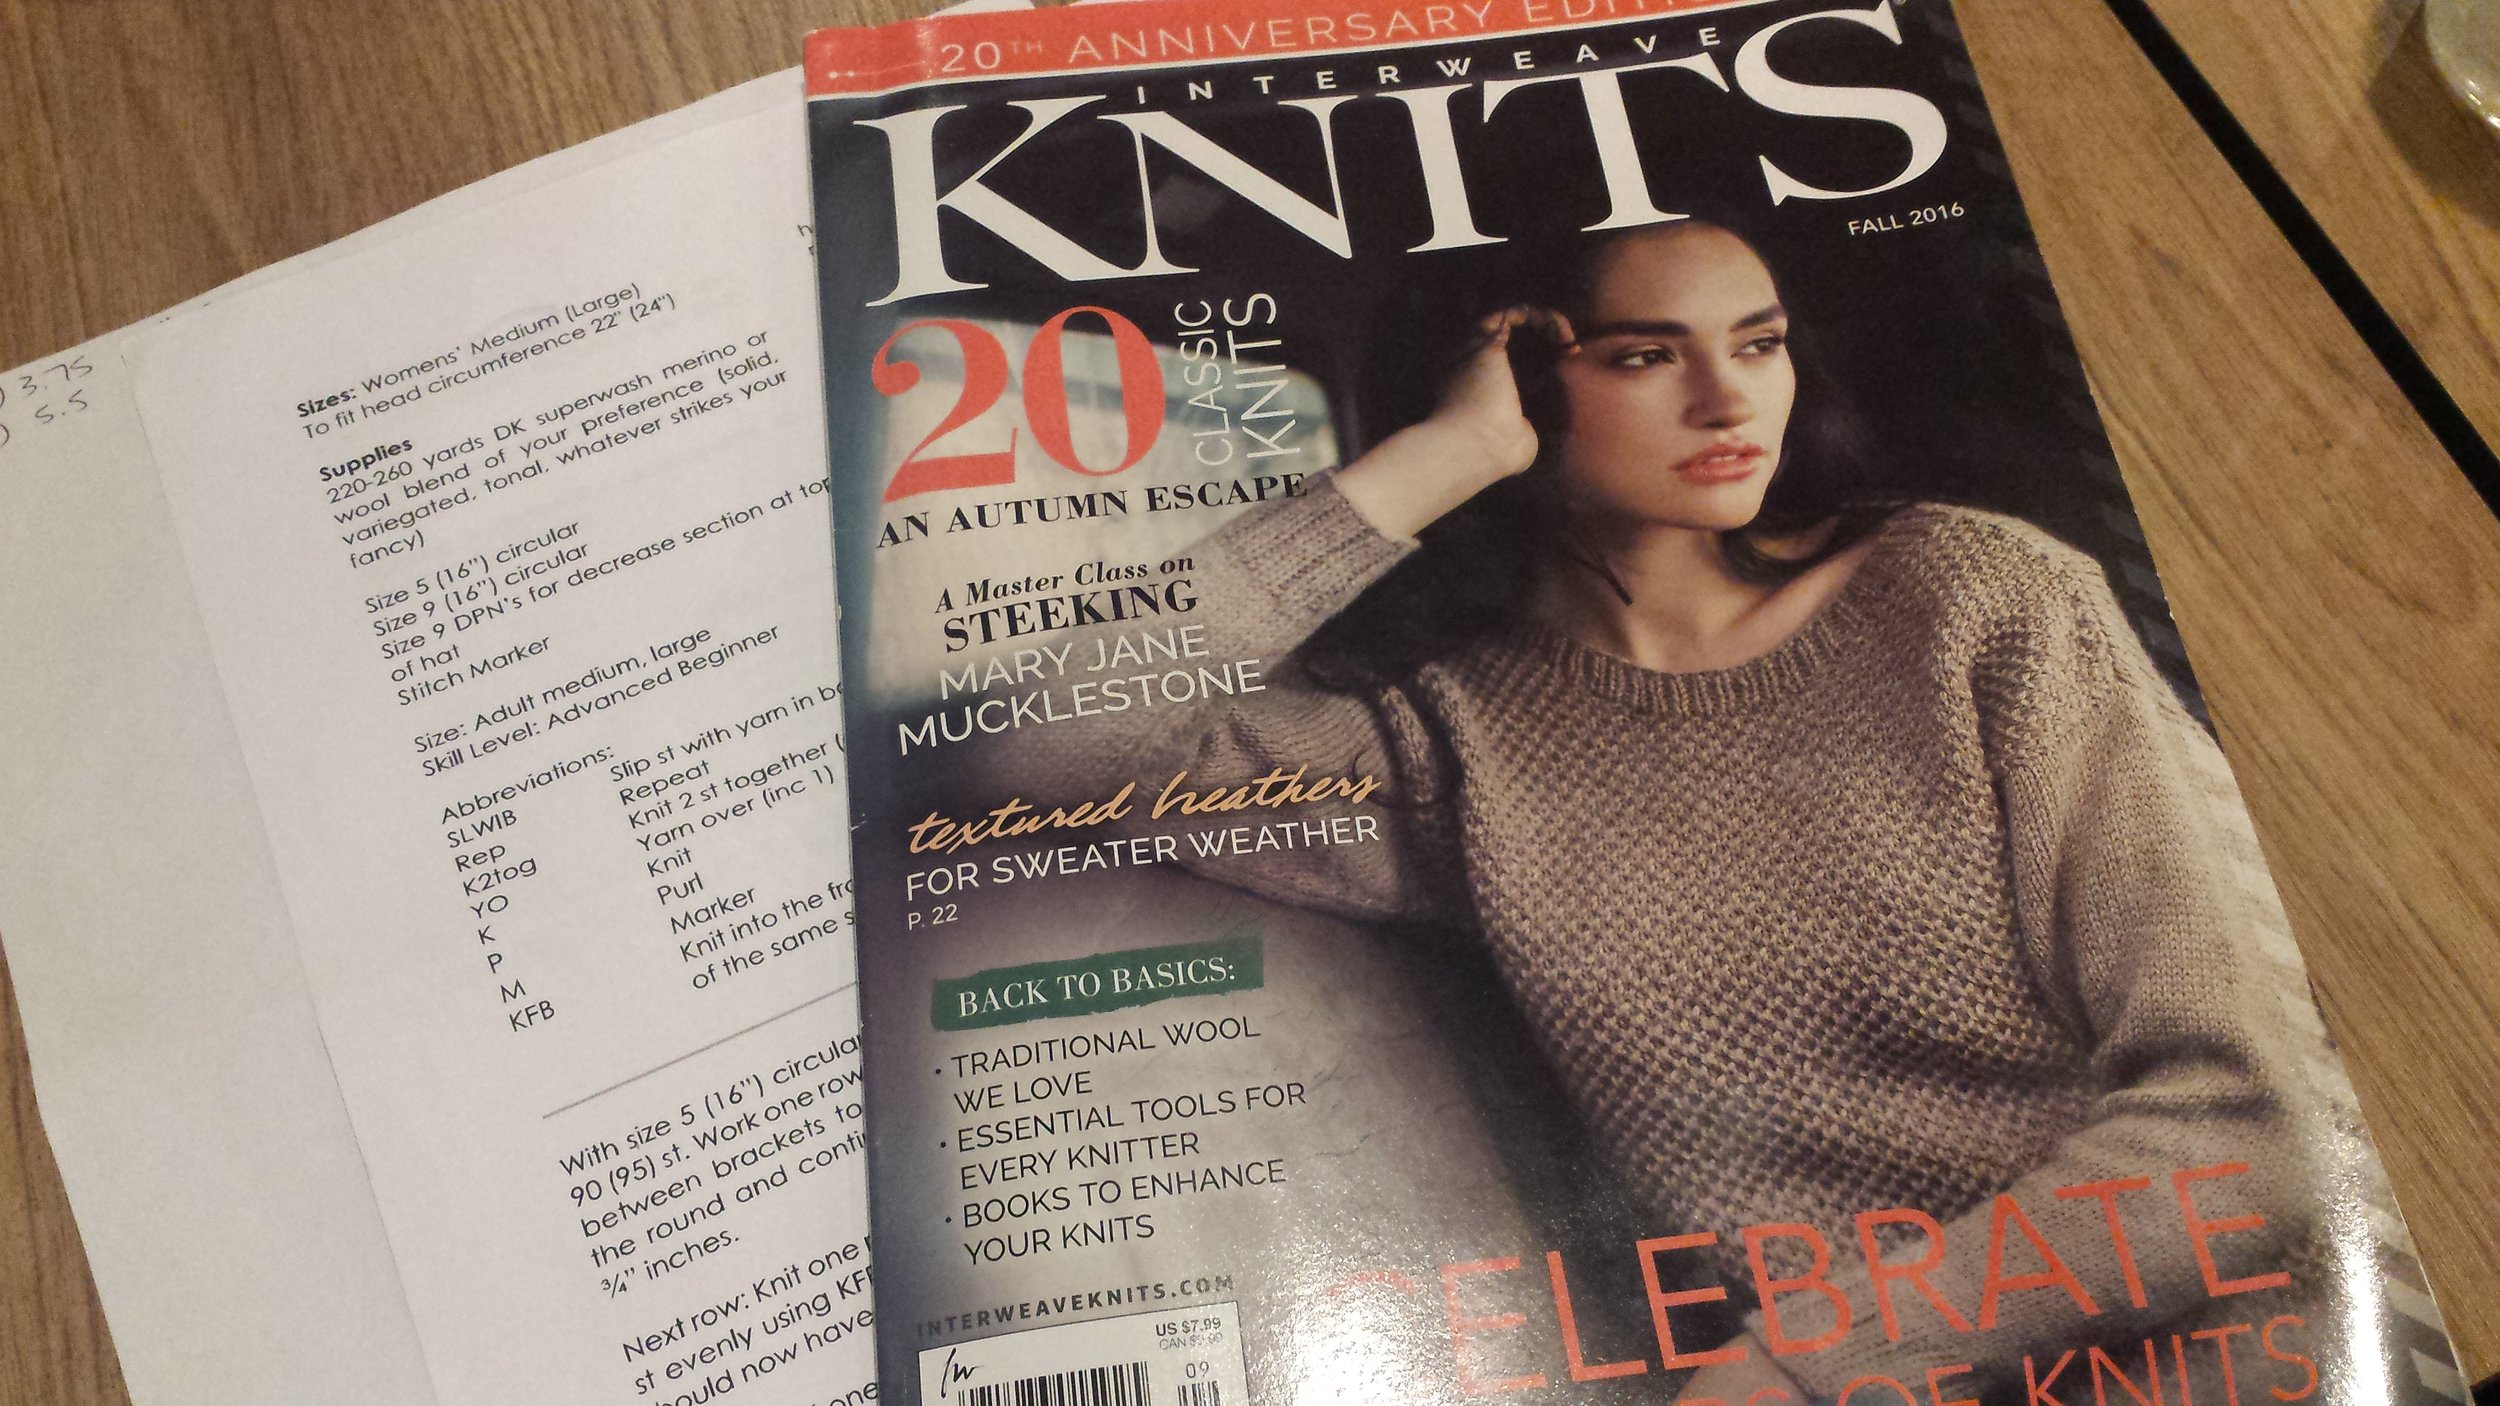 If you have seen the latest knitting magazines you will have will have noticed all the beautiful natural colours and I for one love the naturals! You will still find lots of yarn left in its beautiful natural state as well as tastefully dyed yarns for when you need colour, in my store. I am always looking for new yarn but continue to support local suppliers as much as possible.